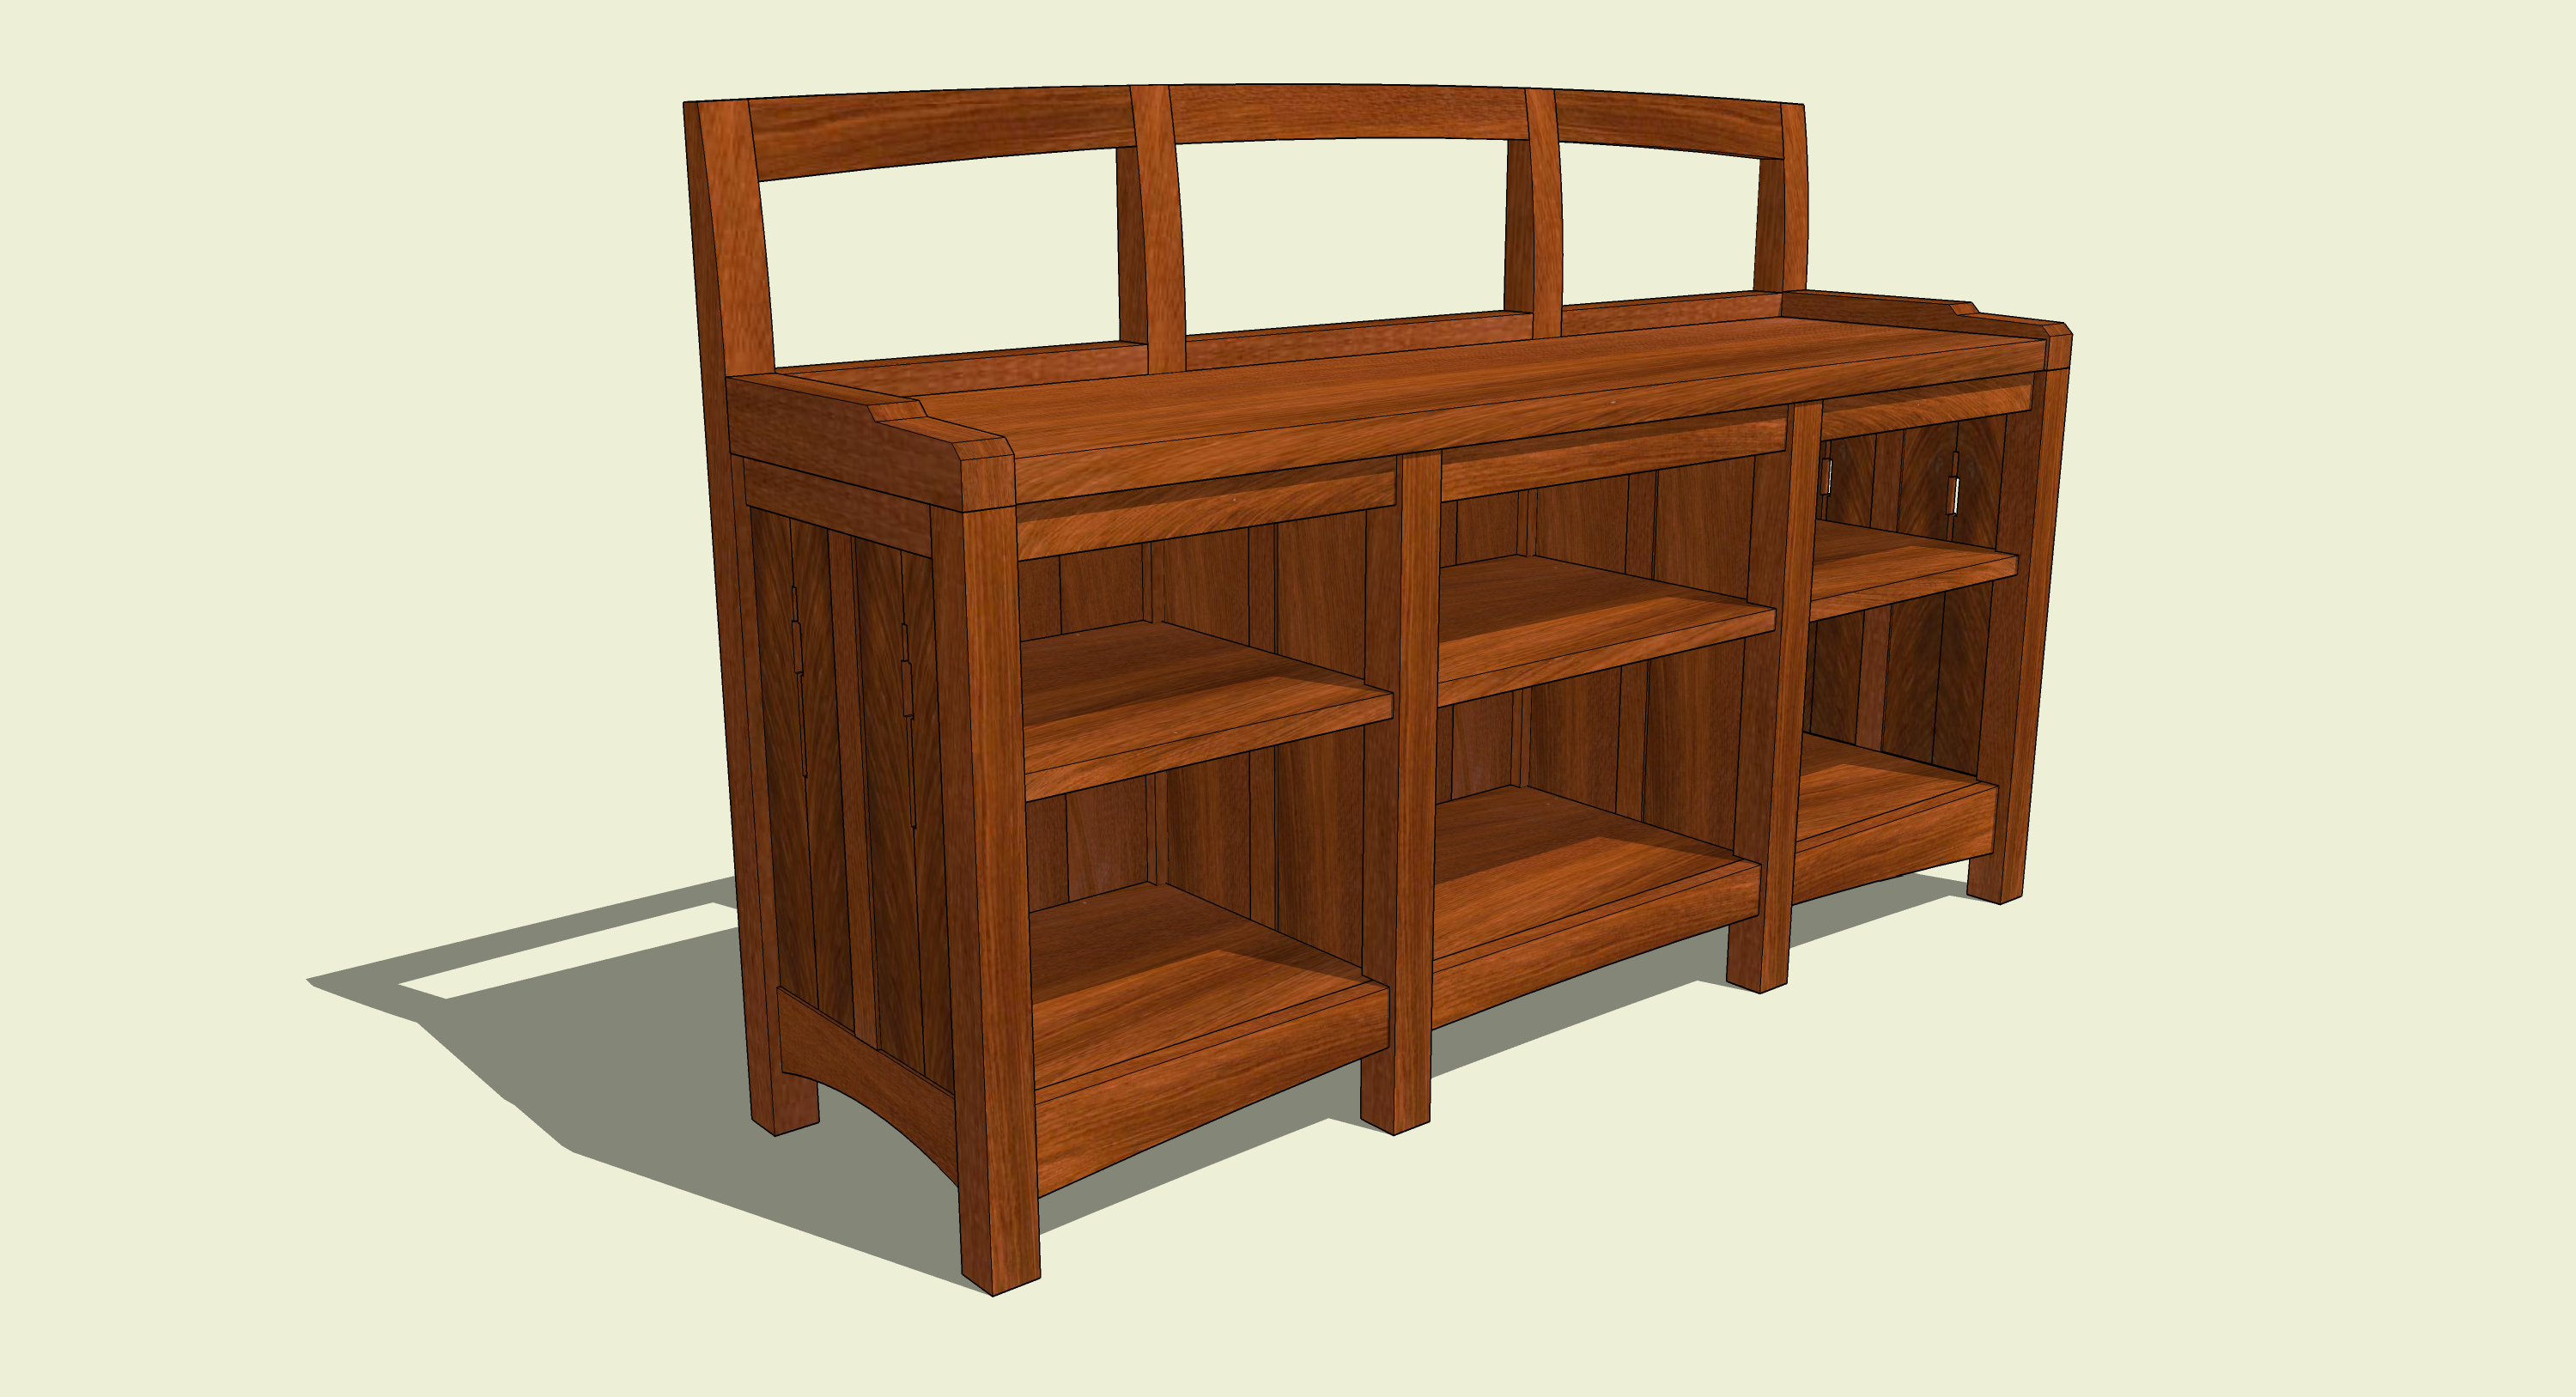 Small bookcase woodworking plans free download